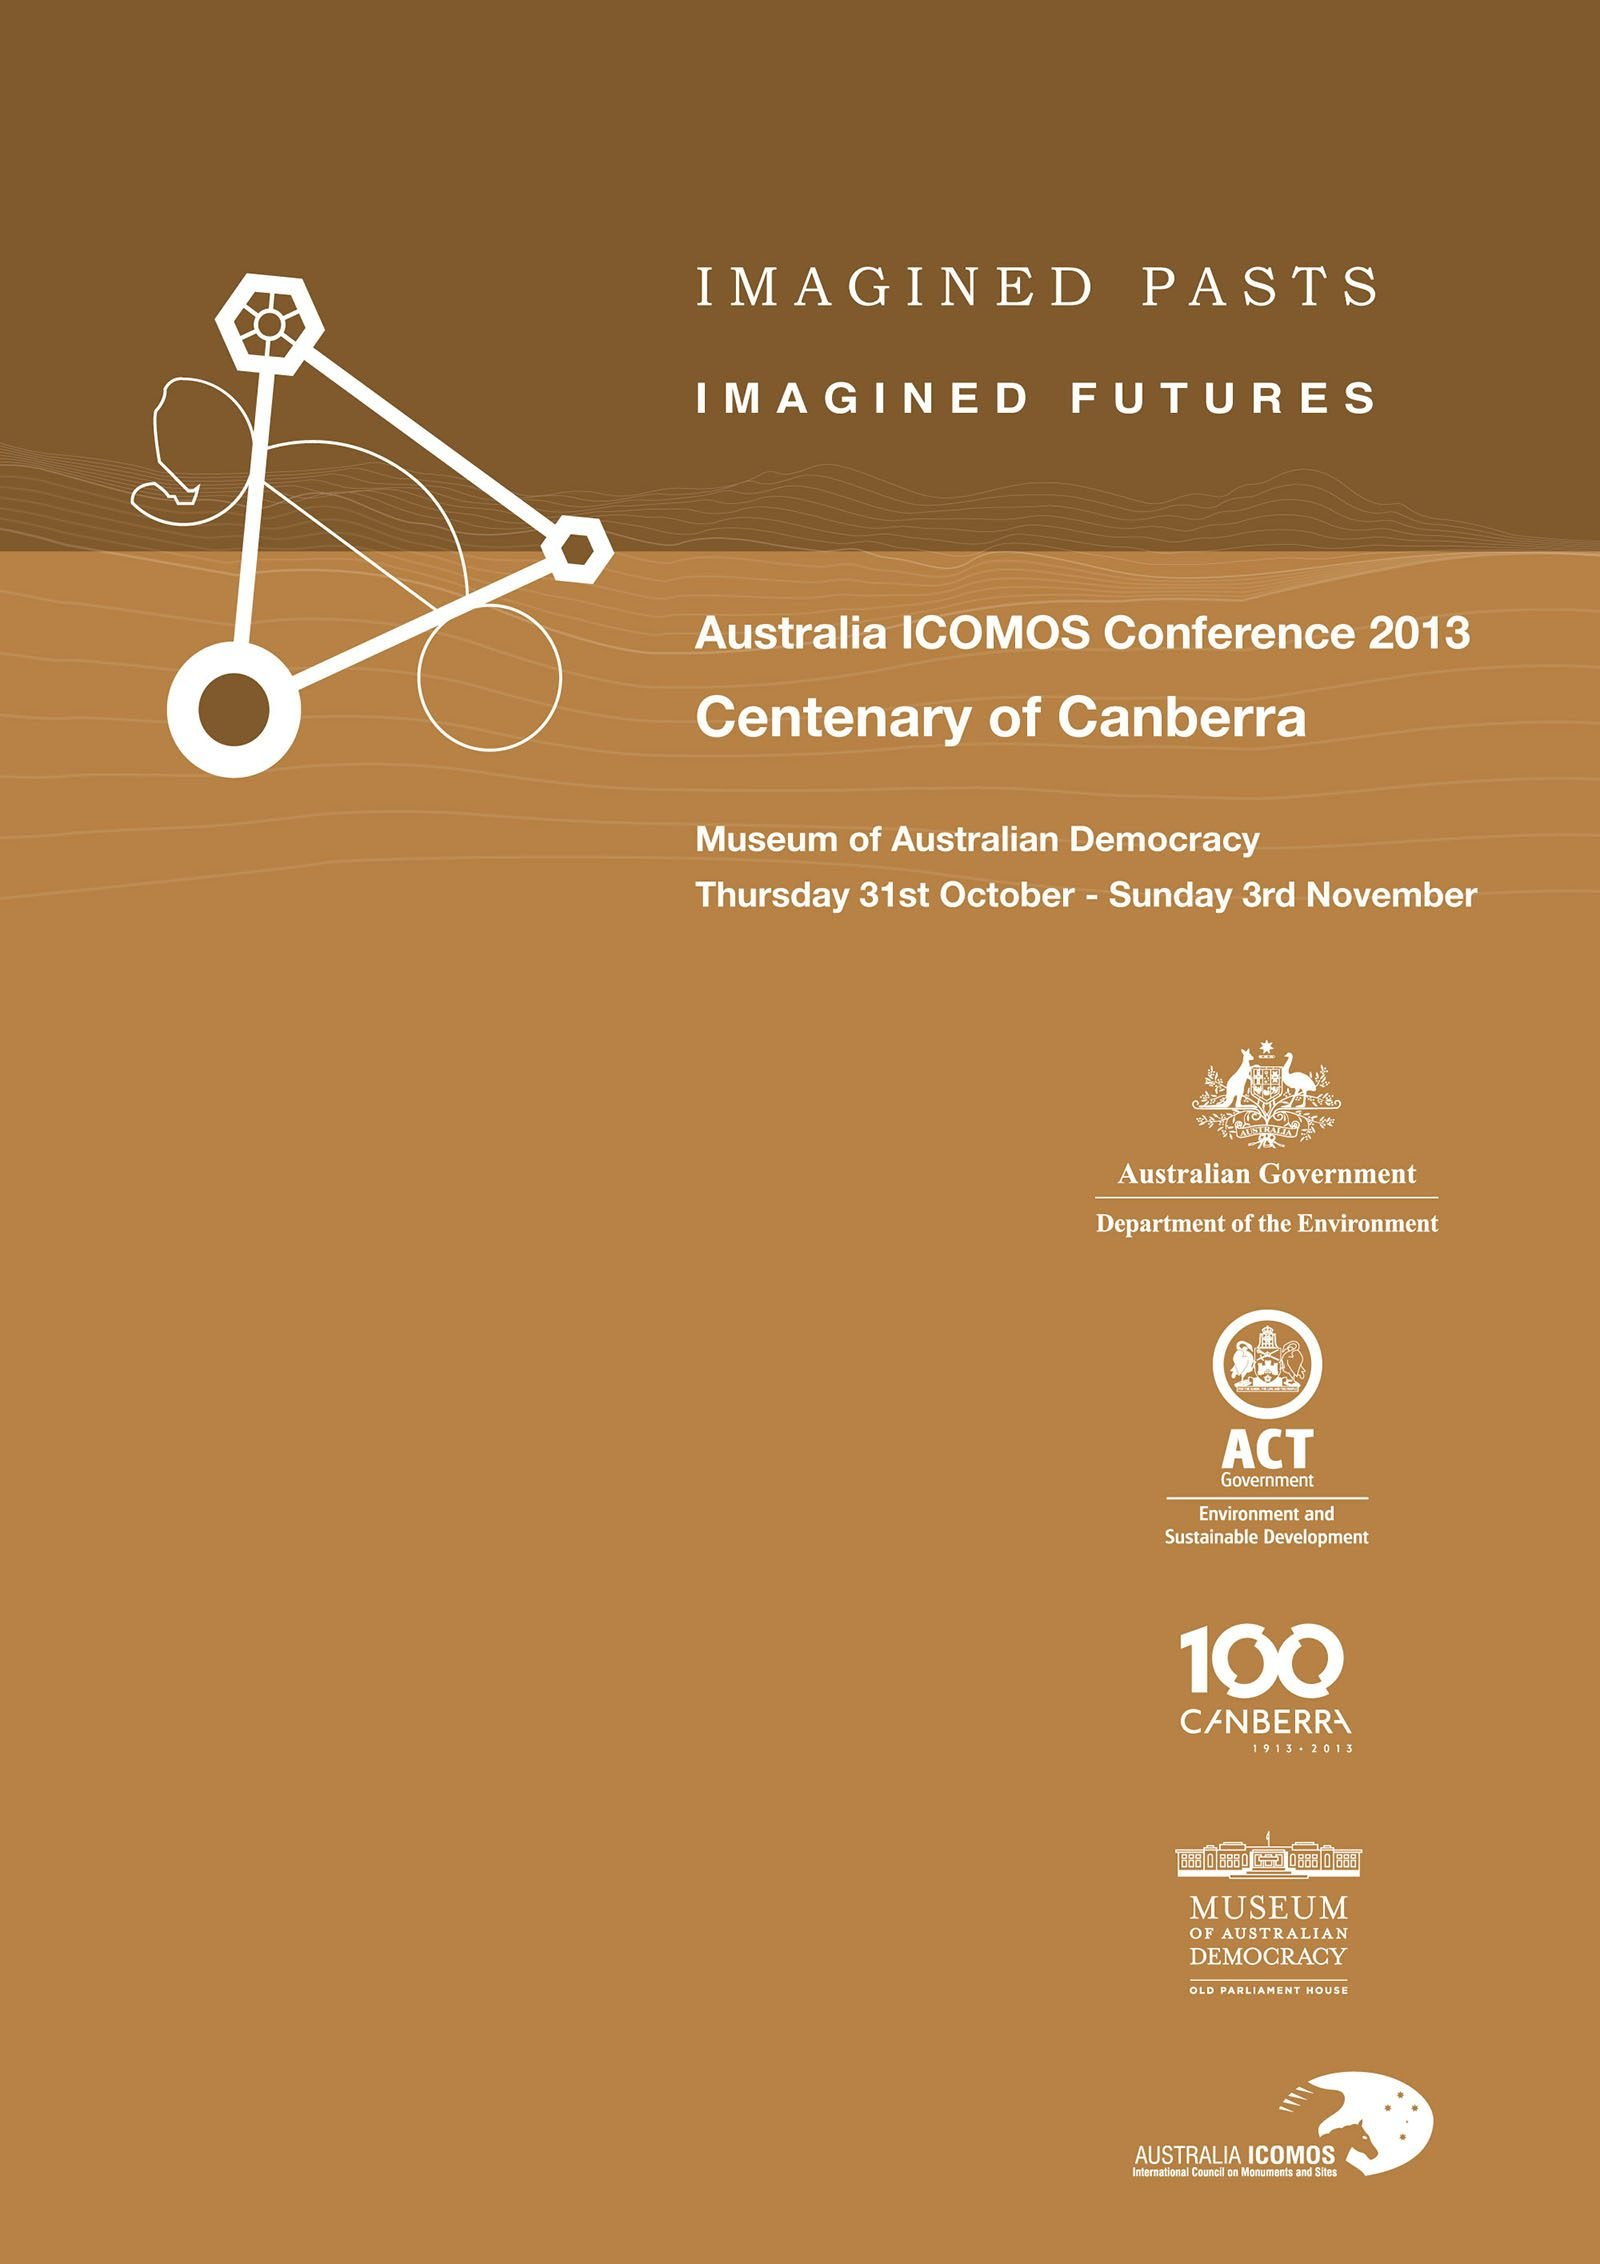 Imagined Pasts Imagined Futures Flyer Cover